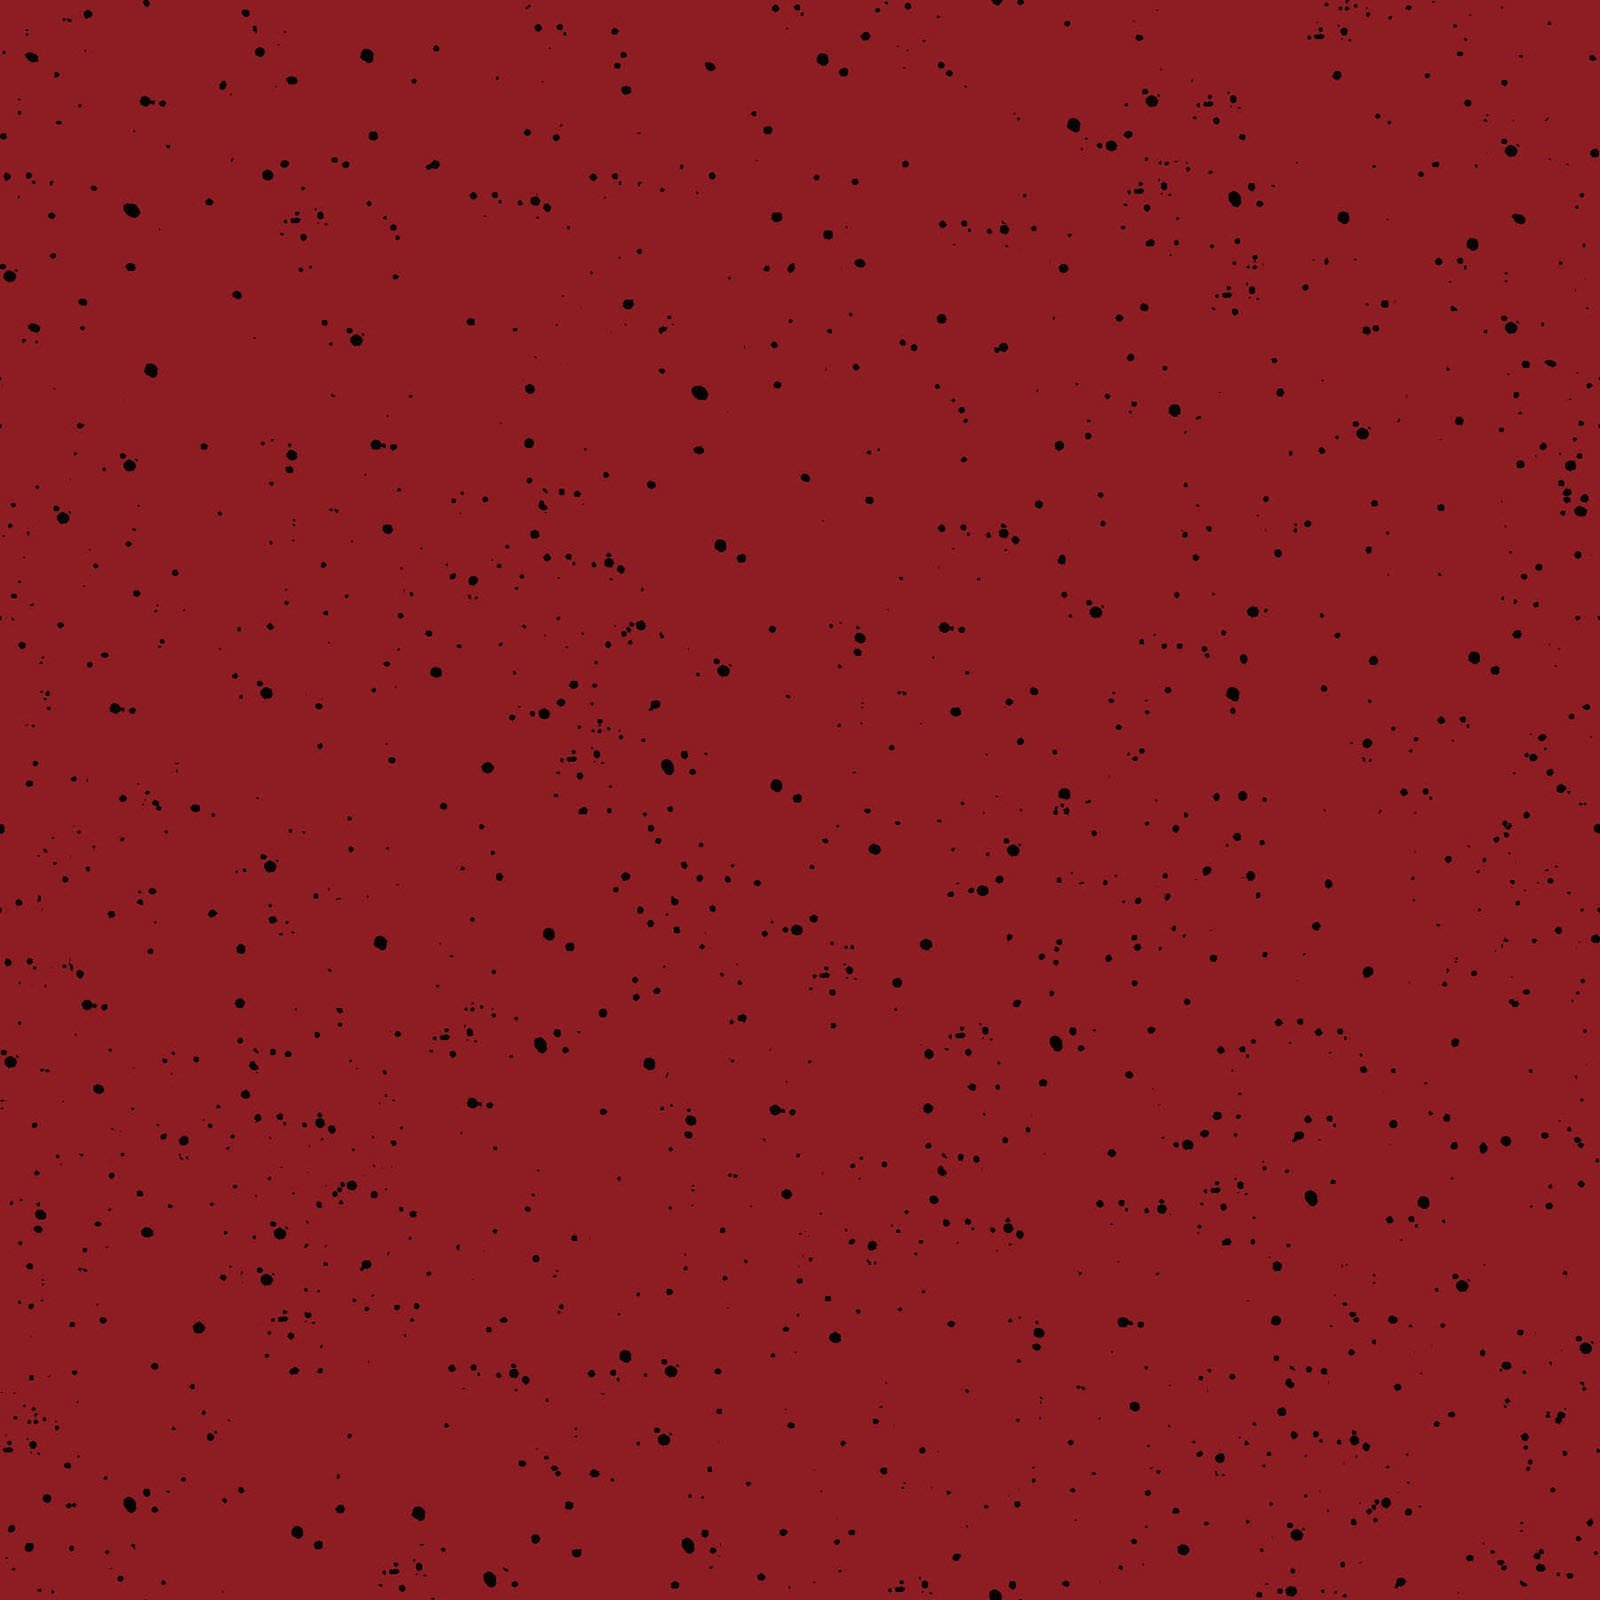 Speckled Solid - Deep Red<br/>Maywood Studio 6205-RJ2